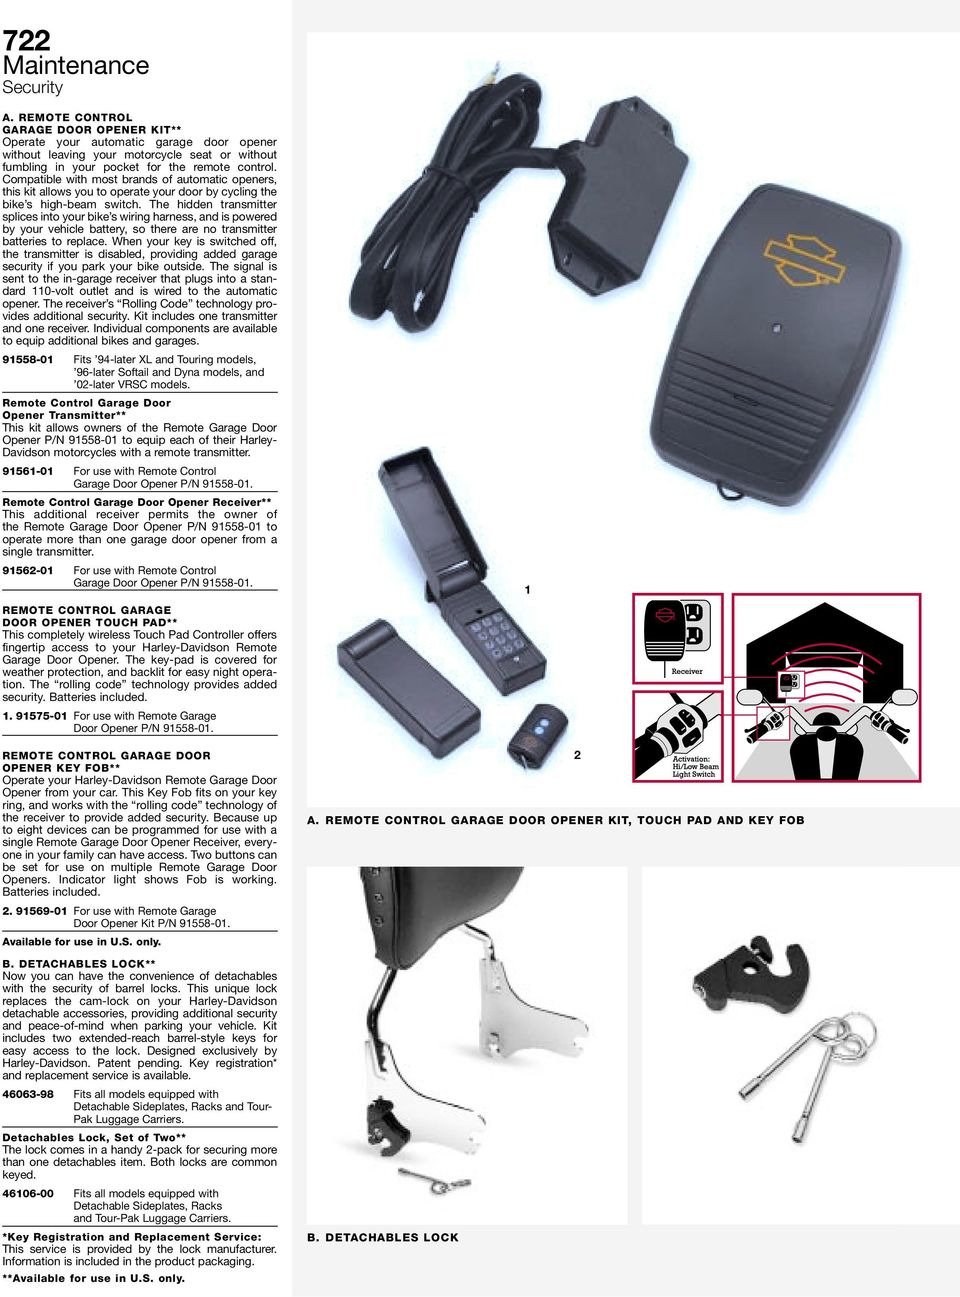 Security Maintenance Pdf Harley Davidson Police Wiring Harness The Hidden Transmitter Splices Into Your Bike S And Is Powered By